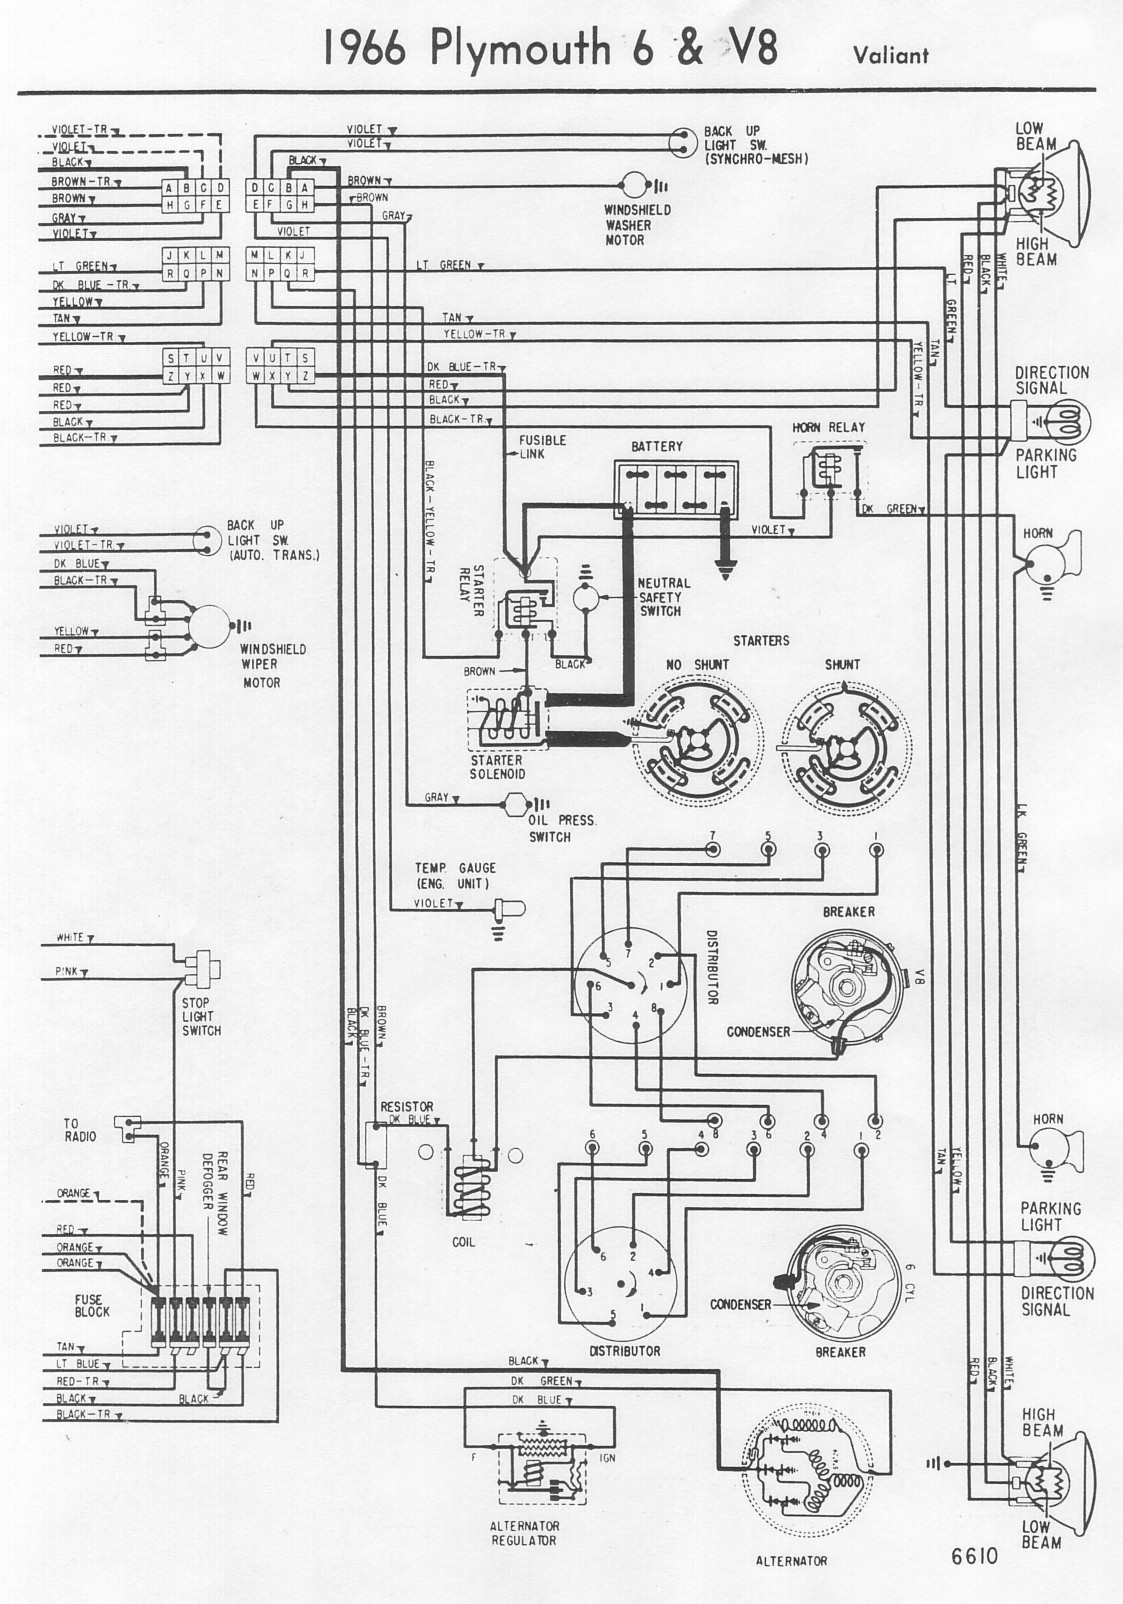 Honda Crf 50 Parts Diagram. Honda. Auto Wiring Diagram